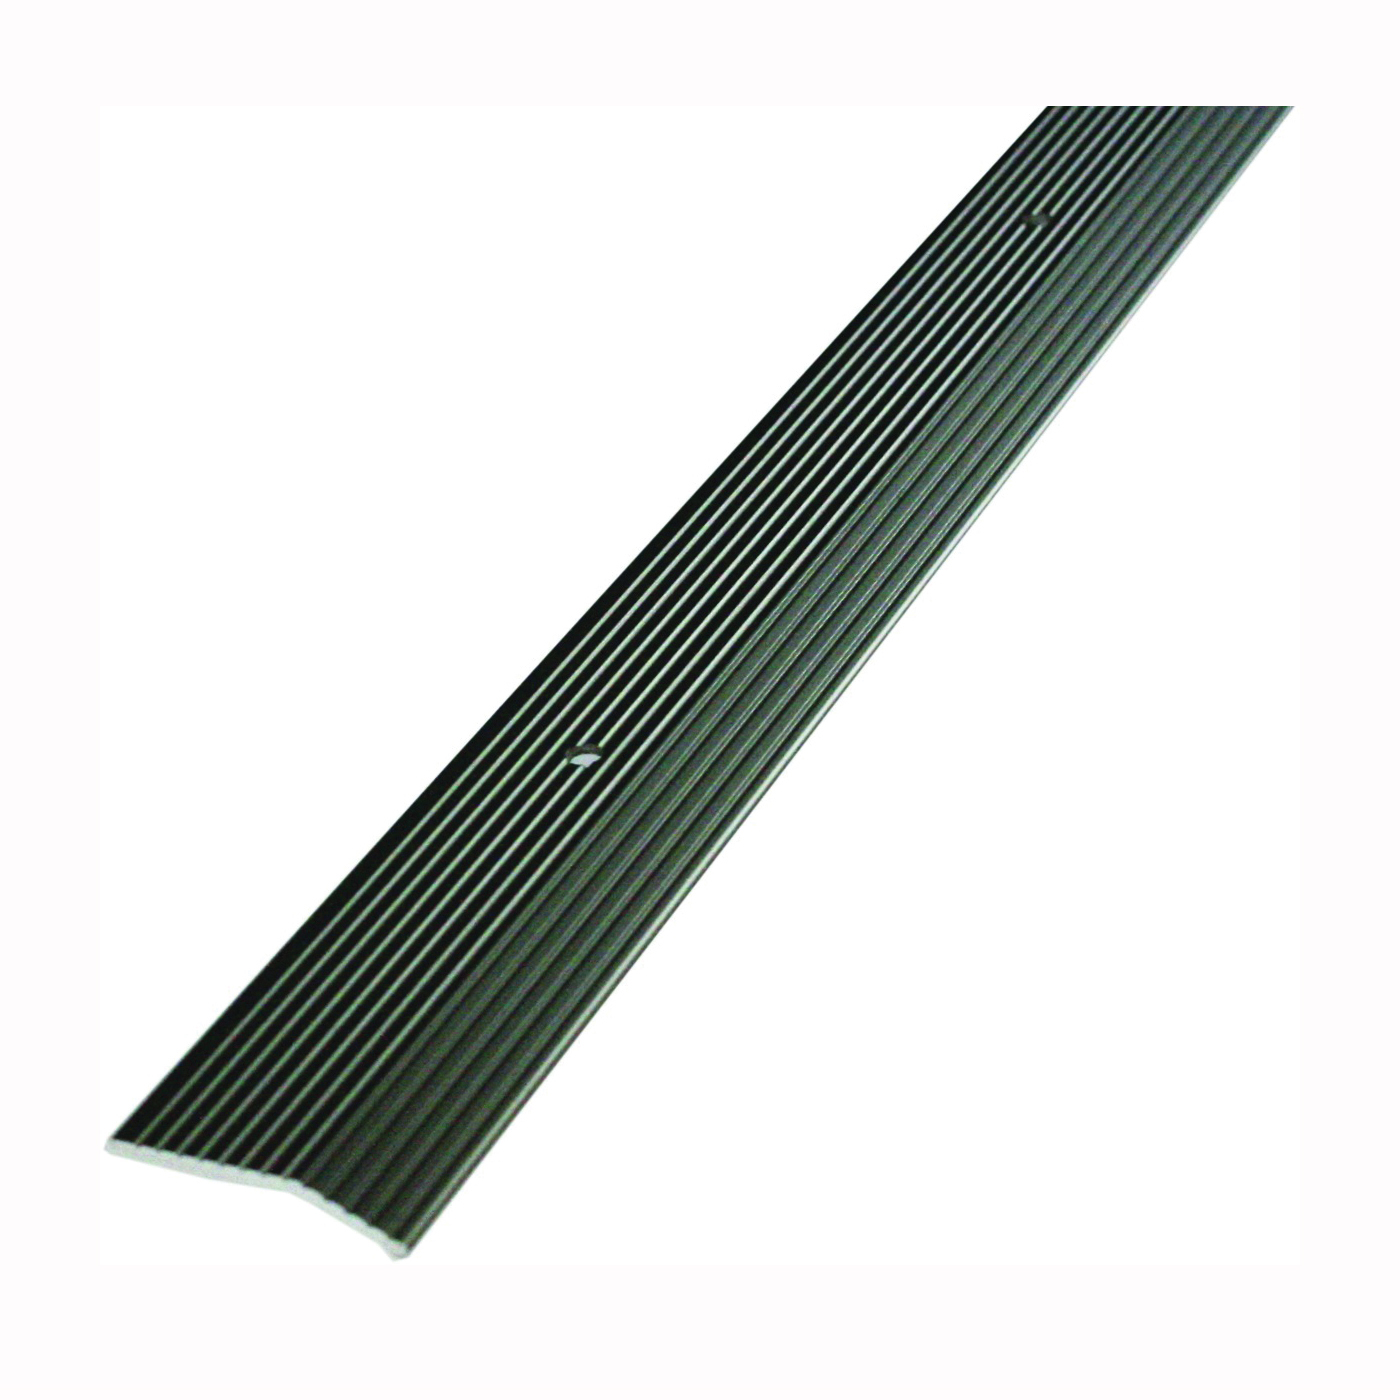 Picture of M-D 43856 Carpet Trim, 72 in L, 1-3/8 in W, Fluted Surface, Aluminum, Pewter